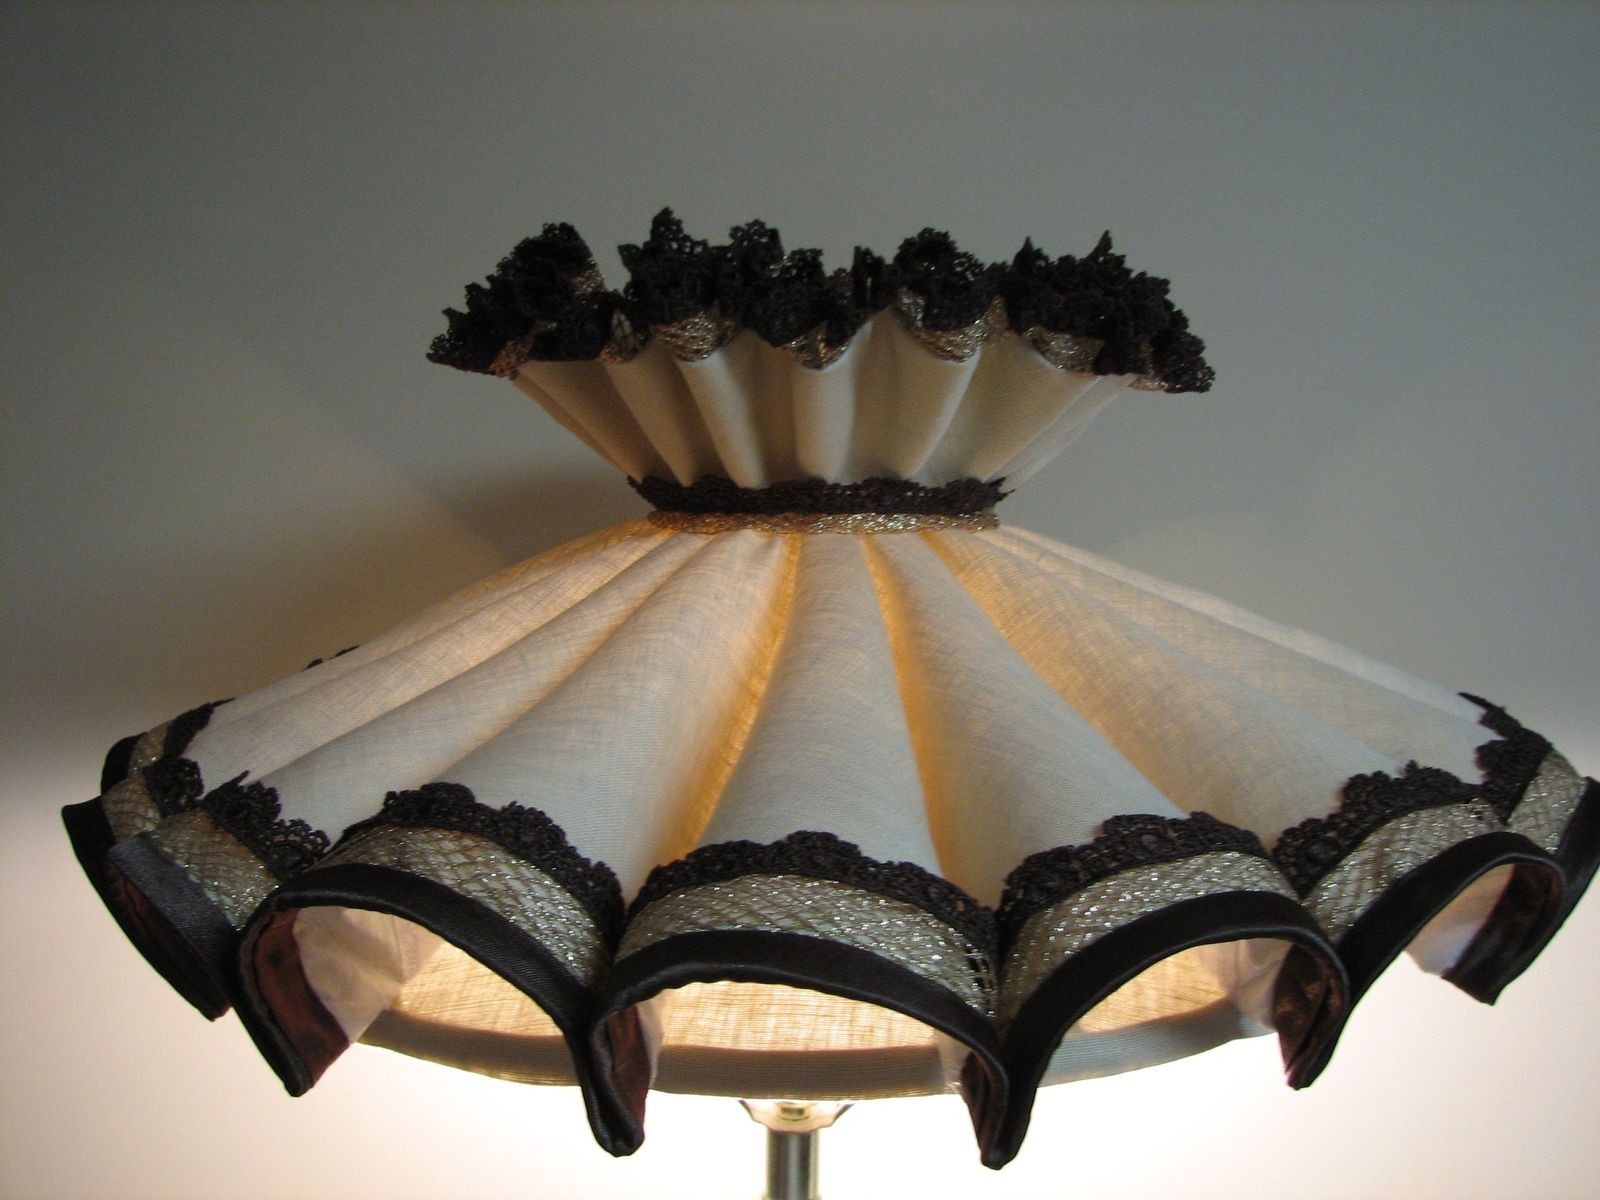 Custom early american lampshade recover by suzanne michelle custom made early american lampshade recover aloadofball